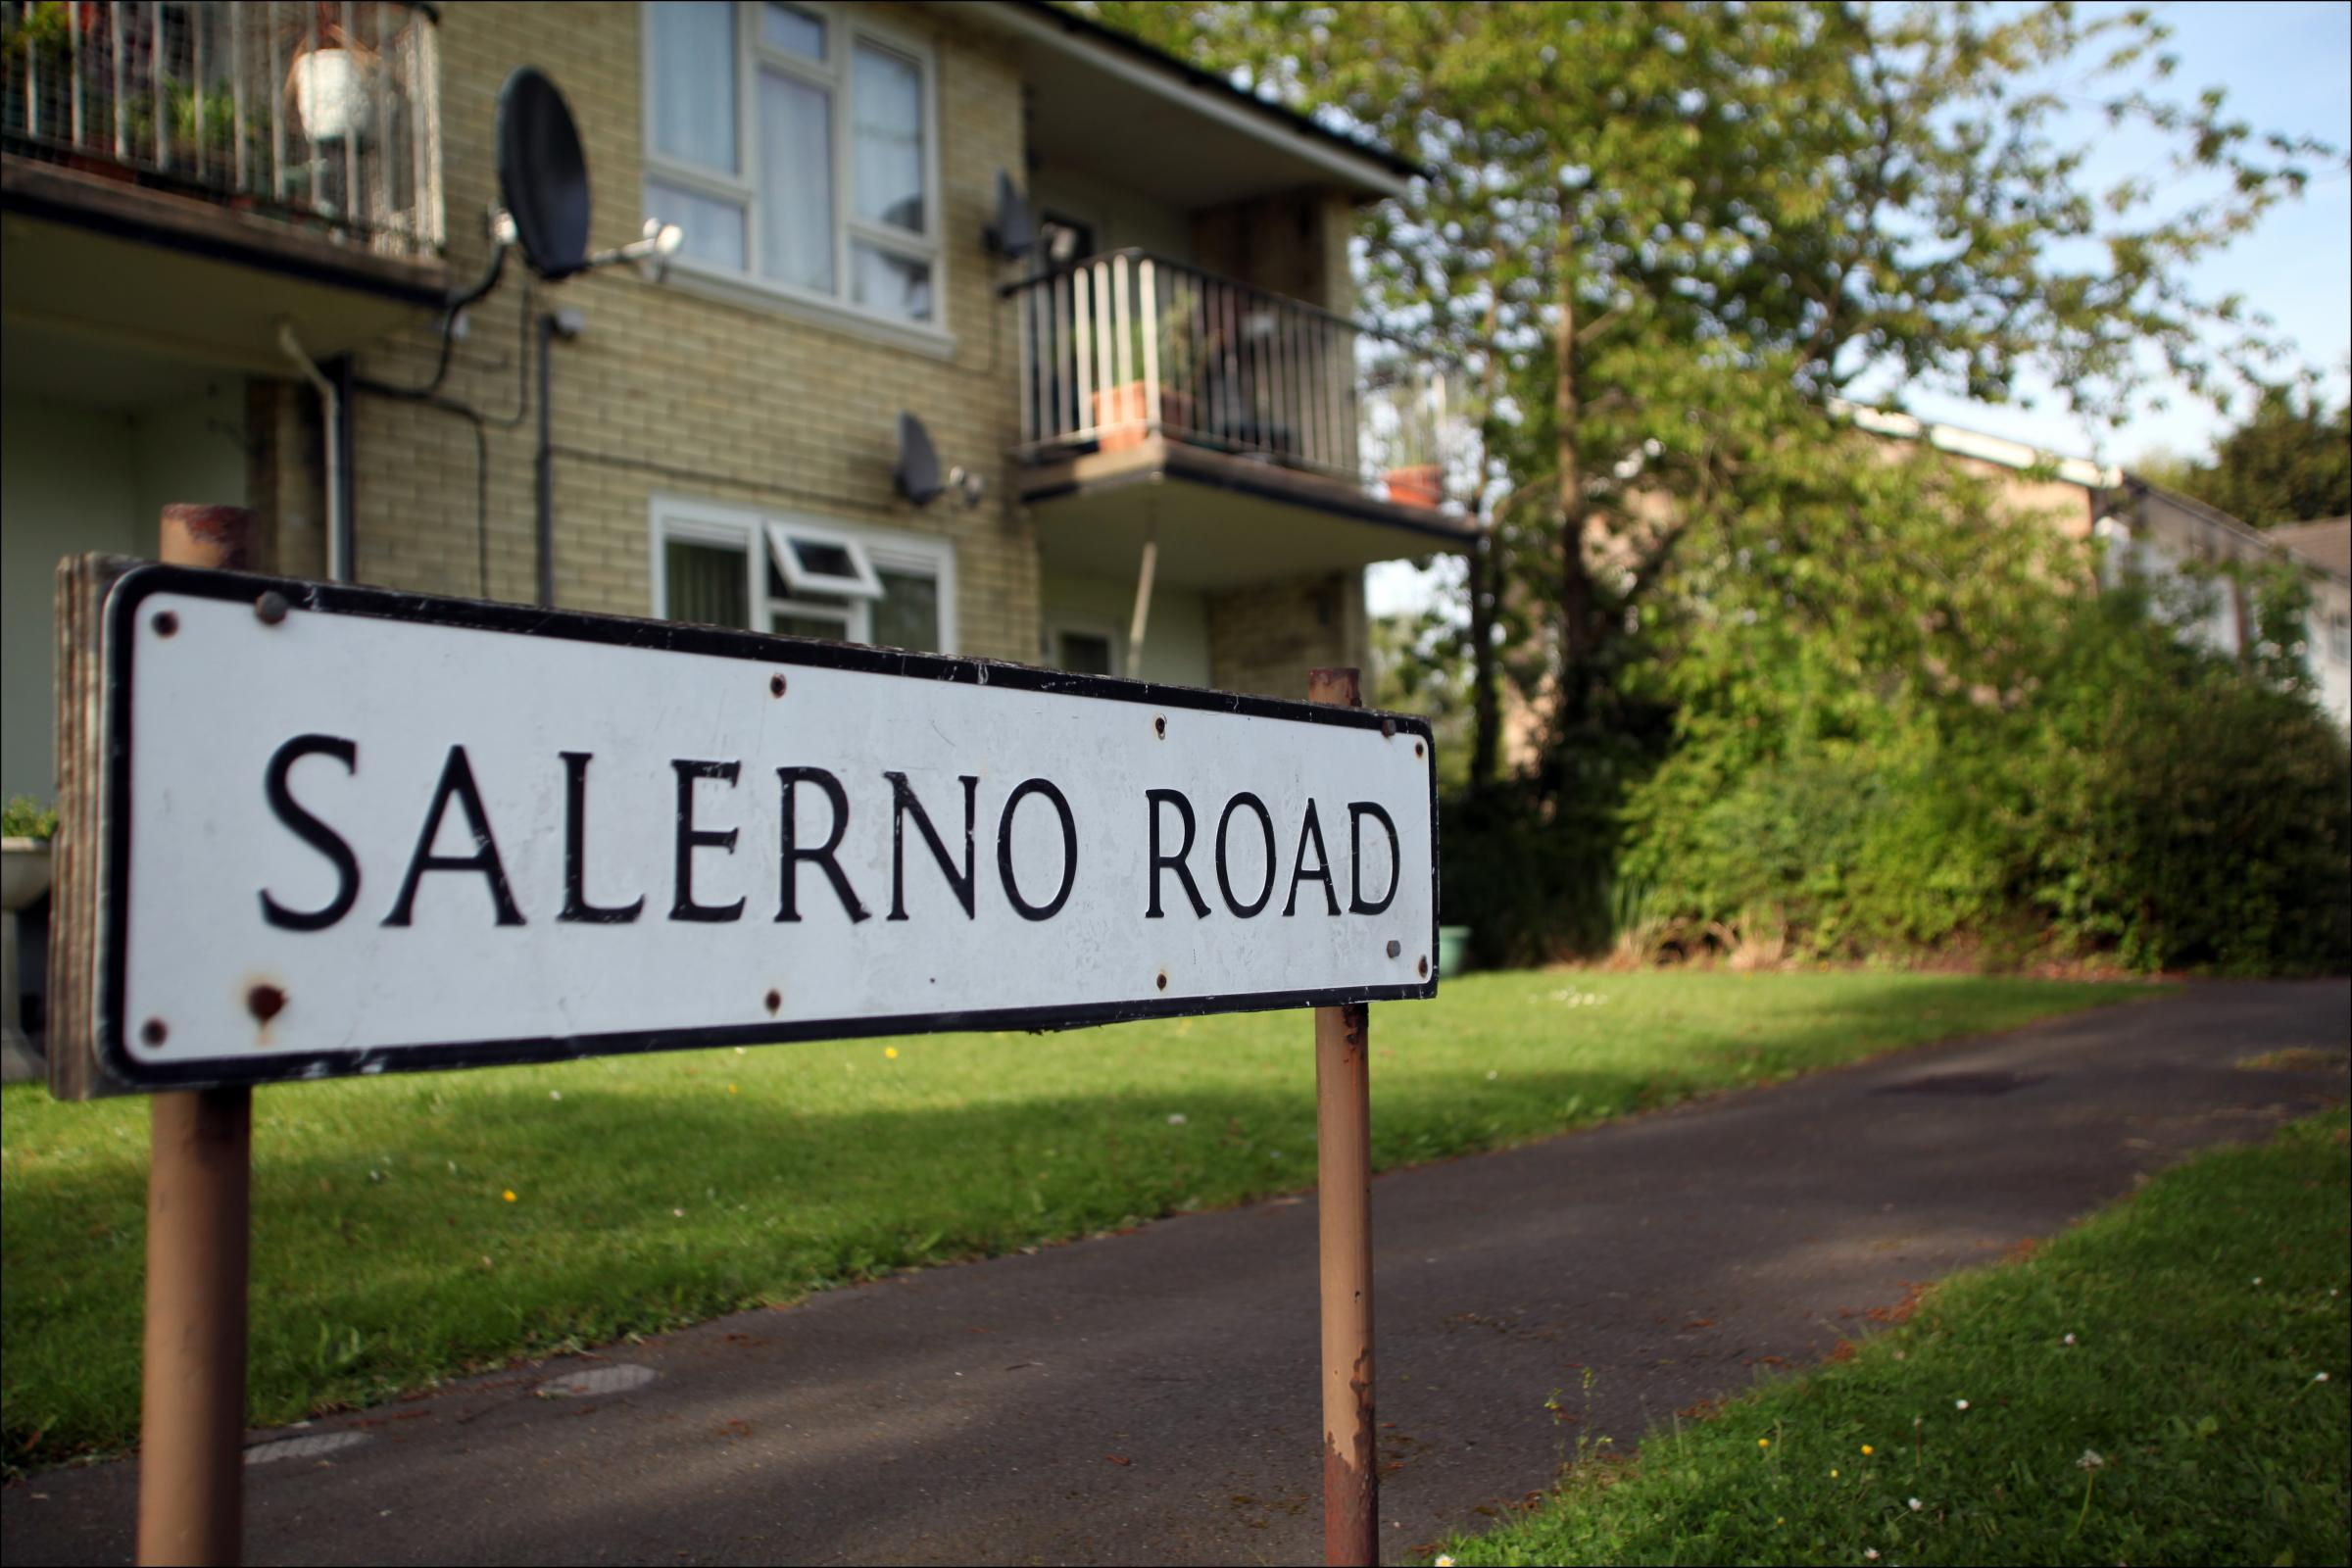 Salerno Road, the area of one of the fires started by arsonists in Southampton